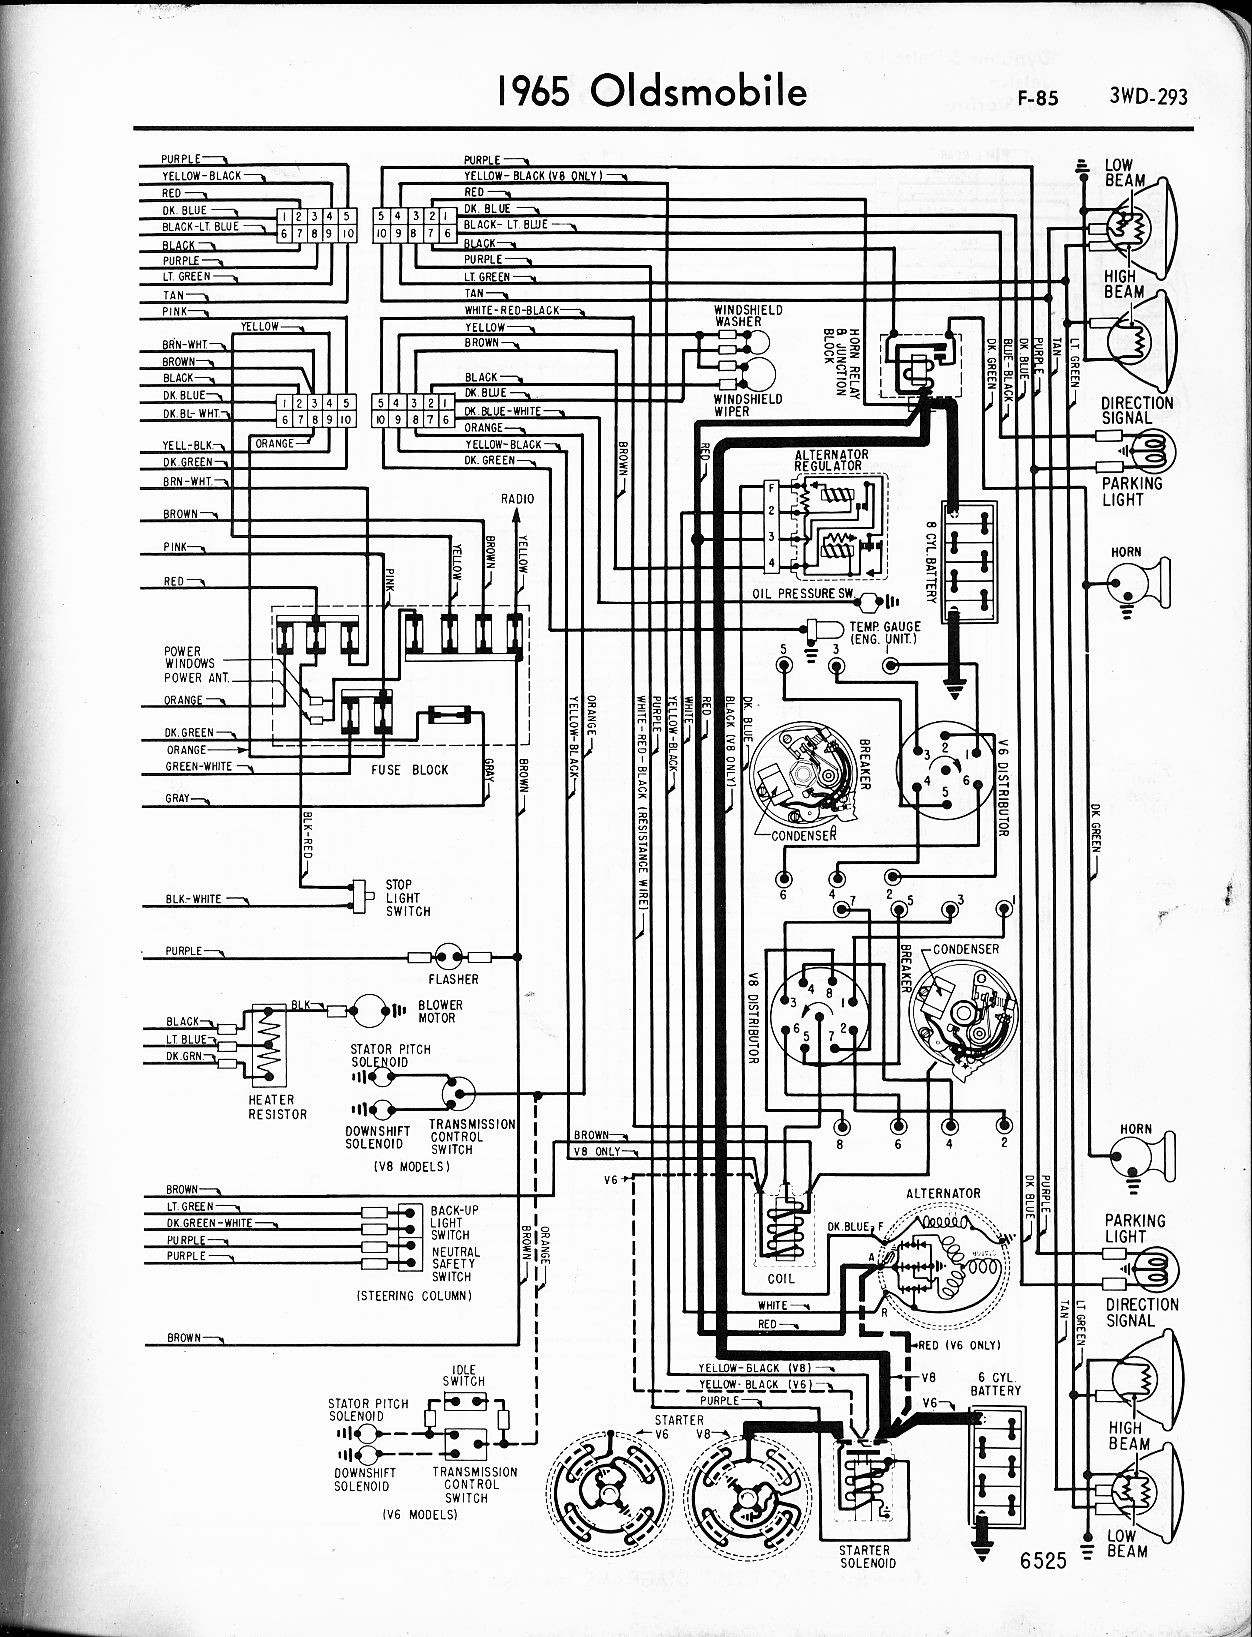 oldsmobile cutlass supreme fuse box on 1971 oldsmobile cutl wiring rh masinisa co Oldsmobile Alero Wiring-Diagram Oldsmobile Alero Wiring-Diagram